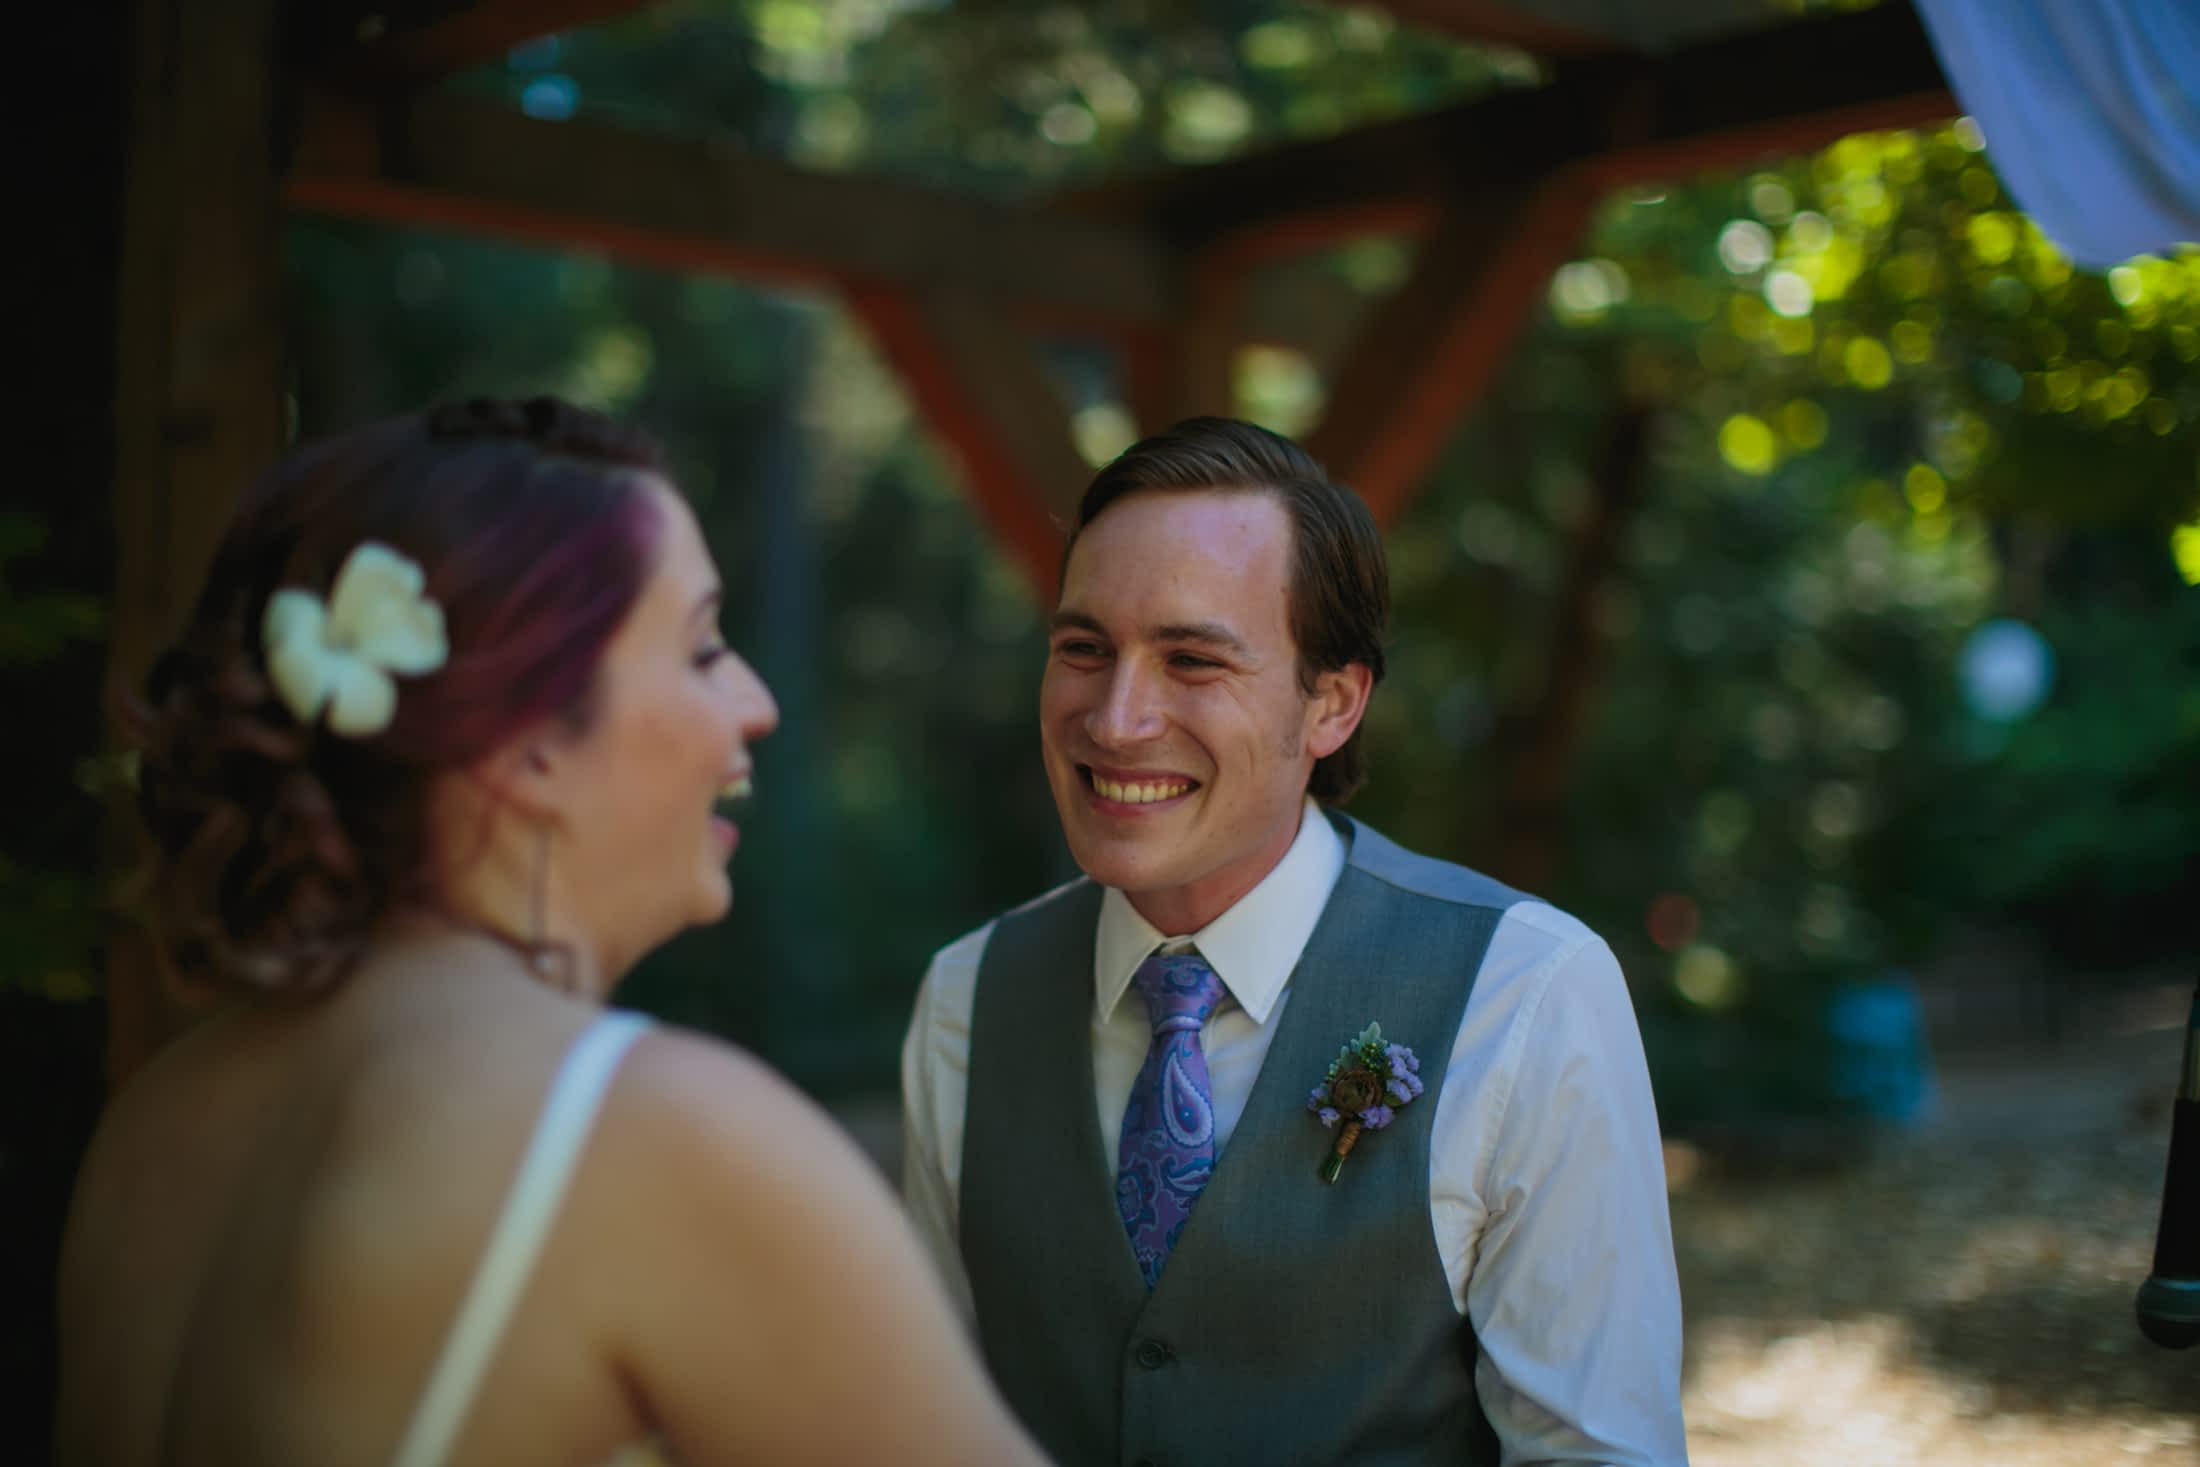 The groom is smiling at his bride while she laughs looking at their guests.